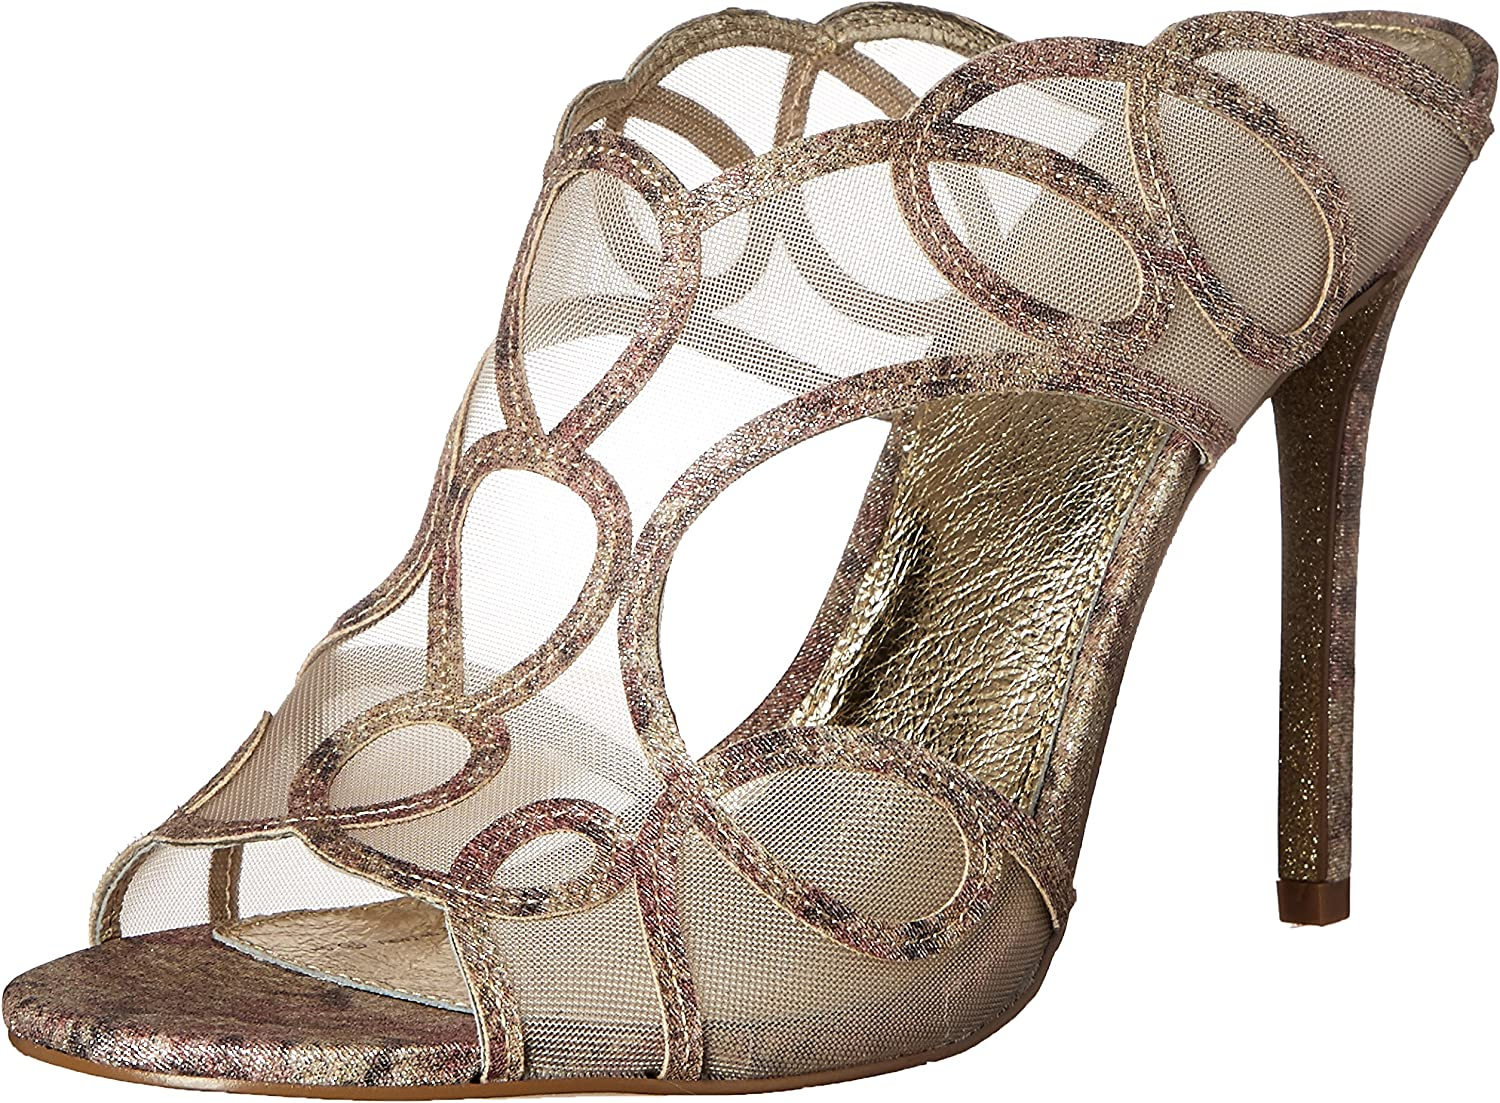 Adrianna Papell Womens Glam Dress Sandal